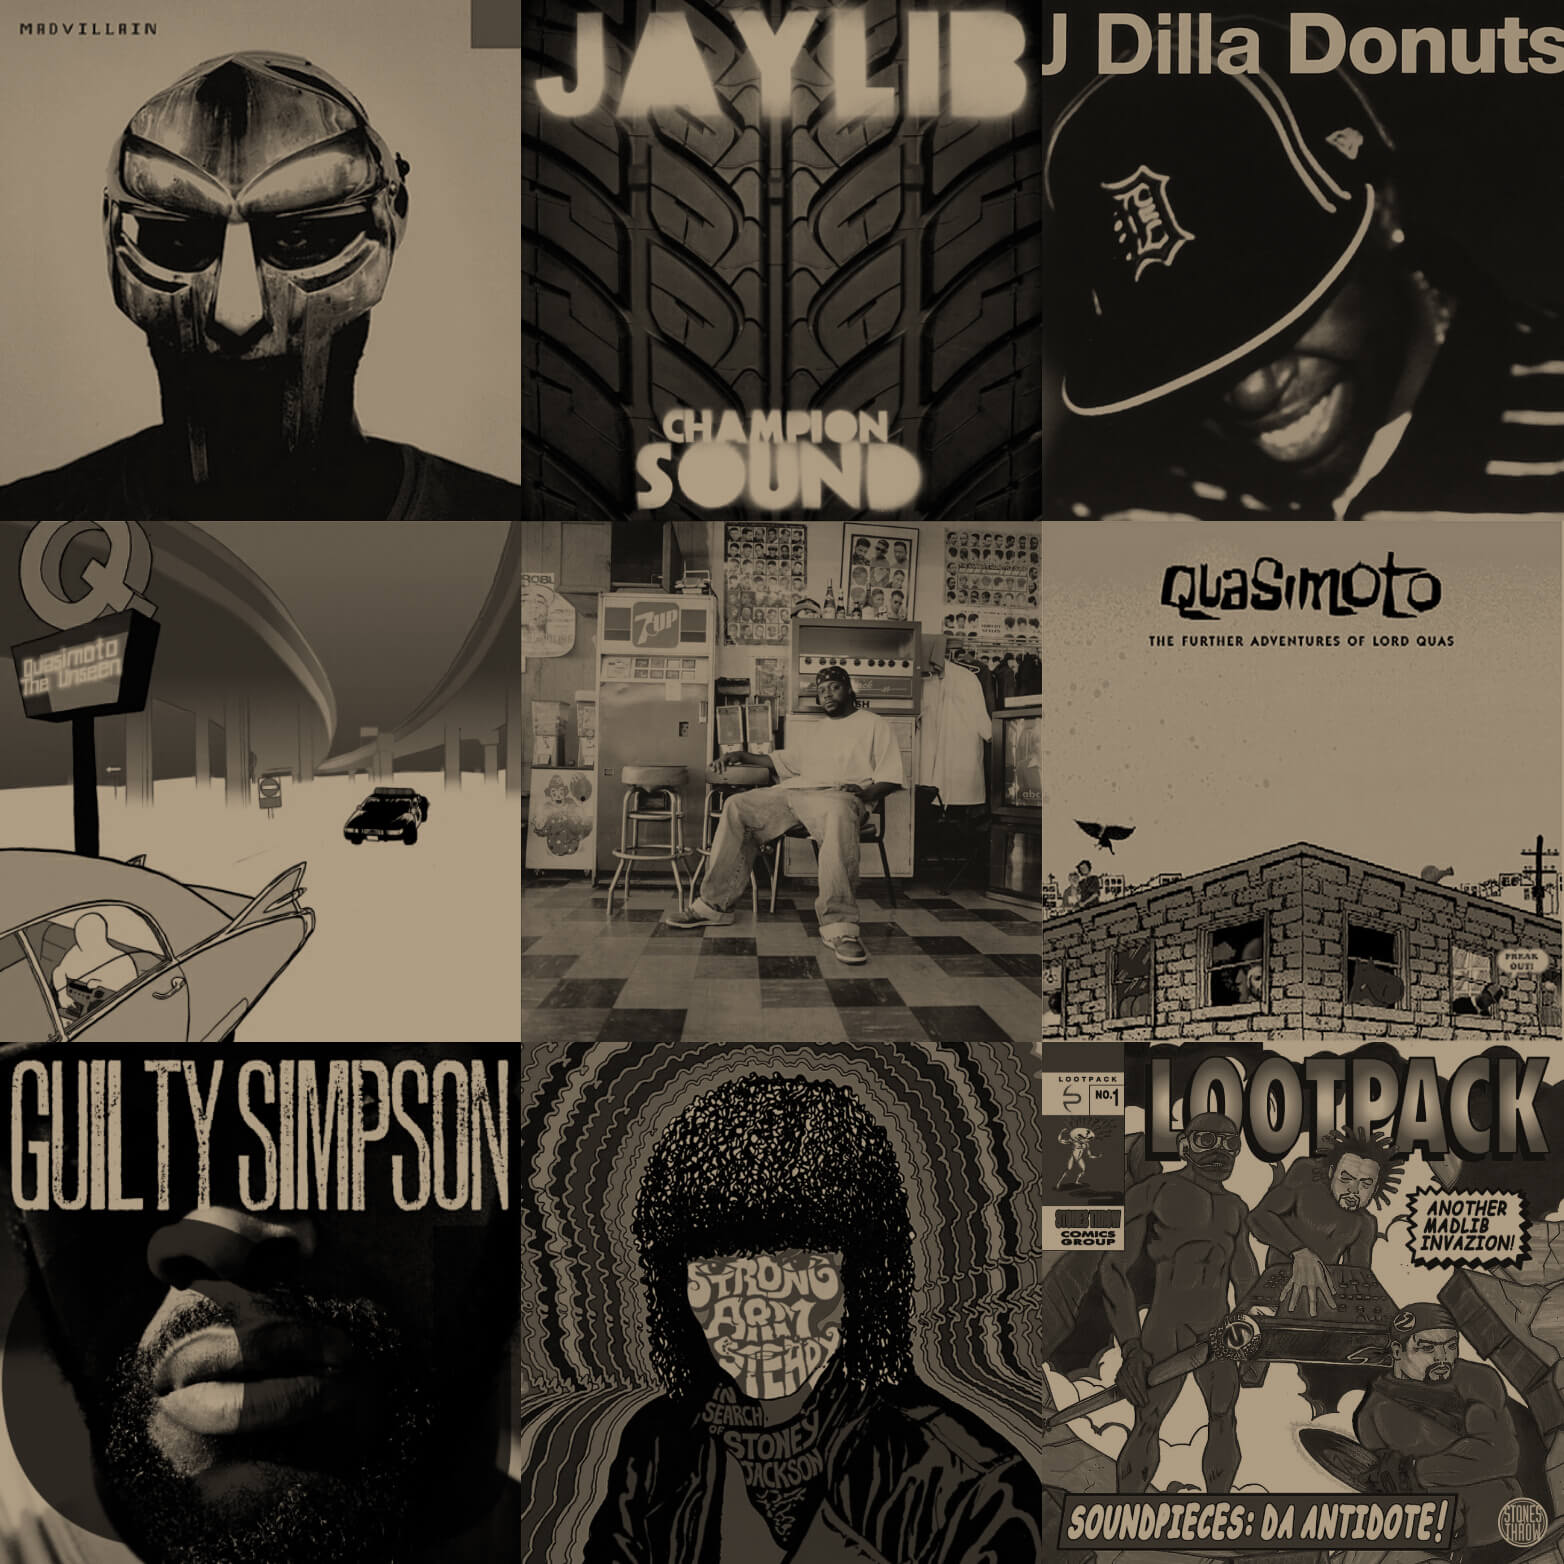 My Vinyl Weighs A Ton: The Best Albums From Stones Throw Records